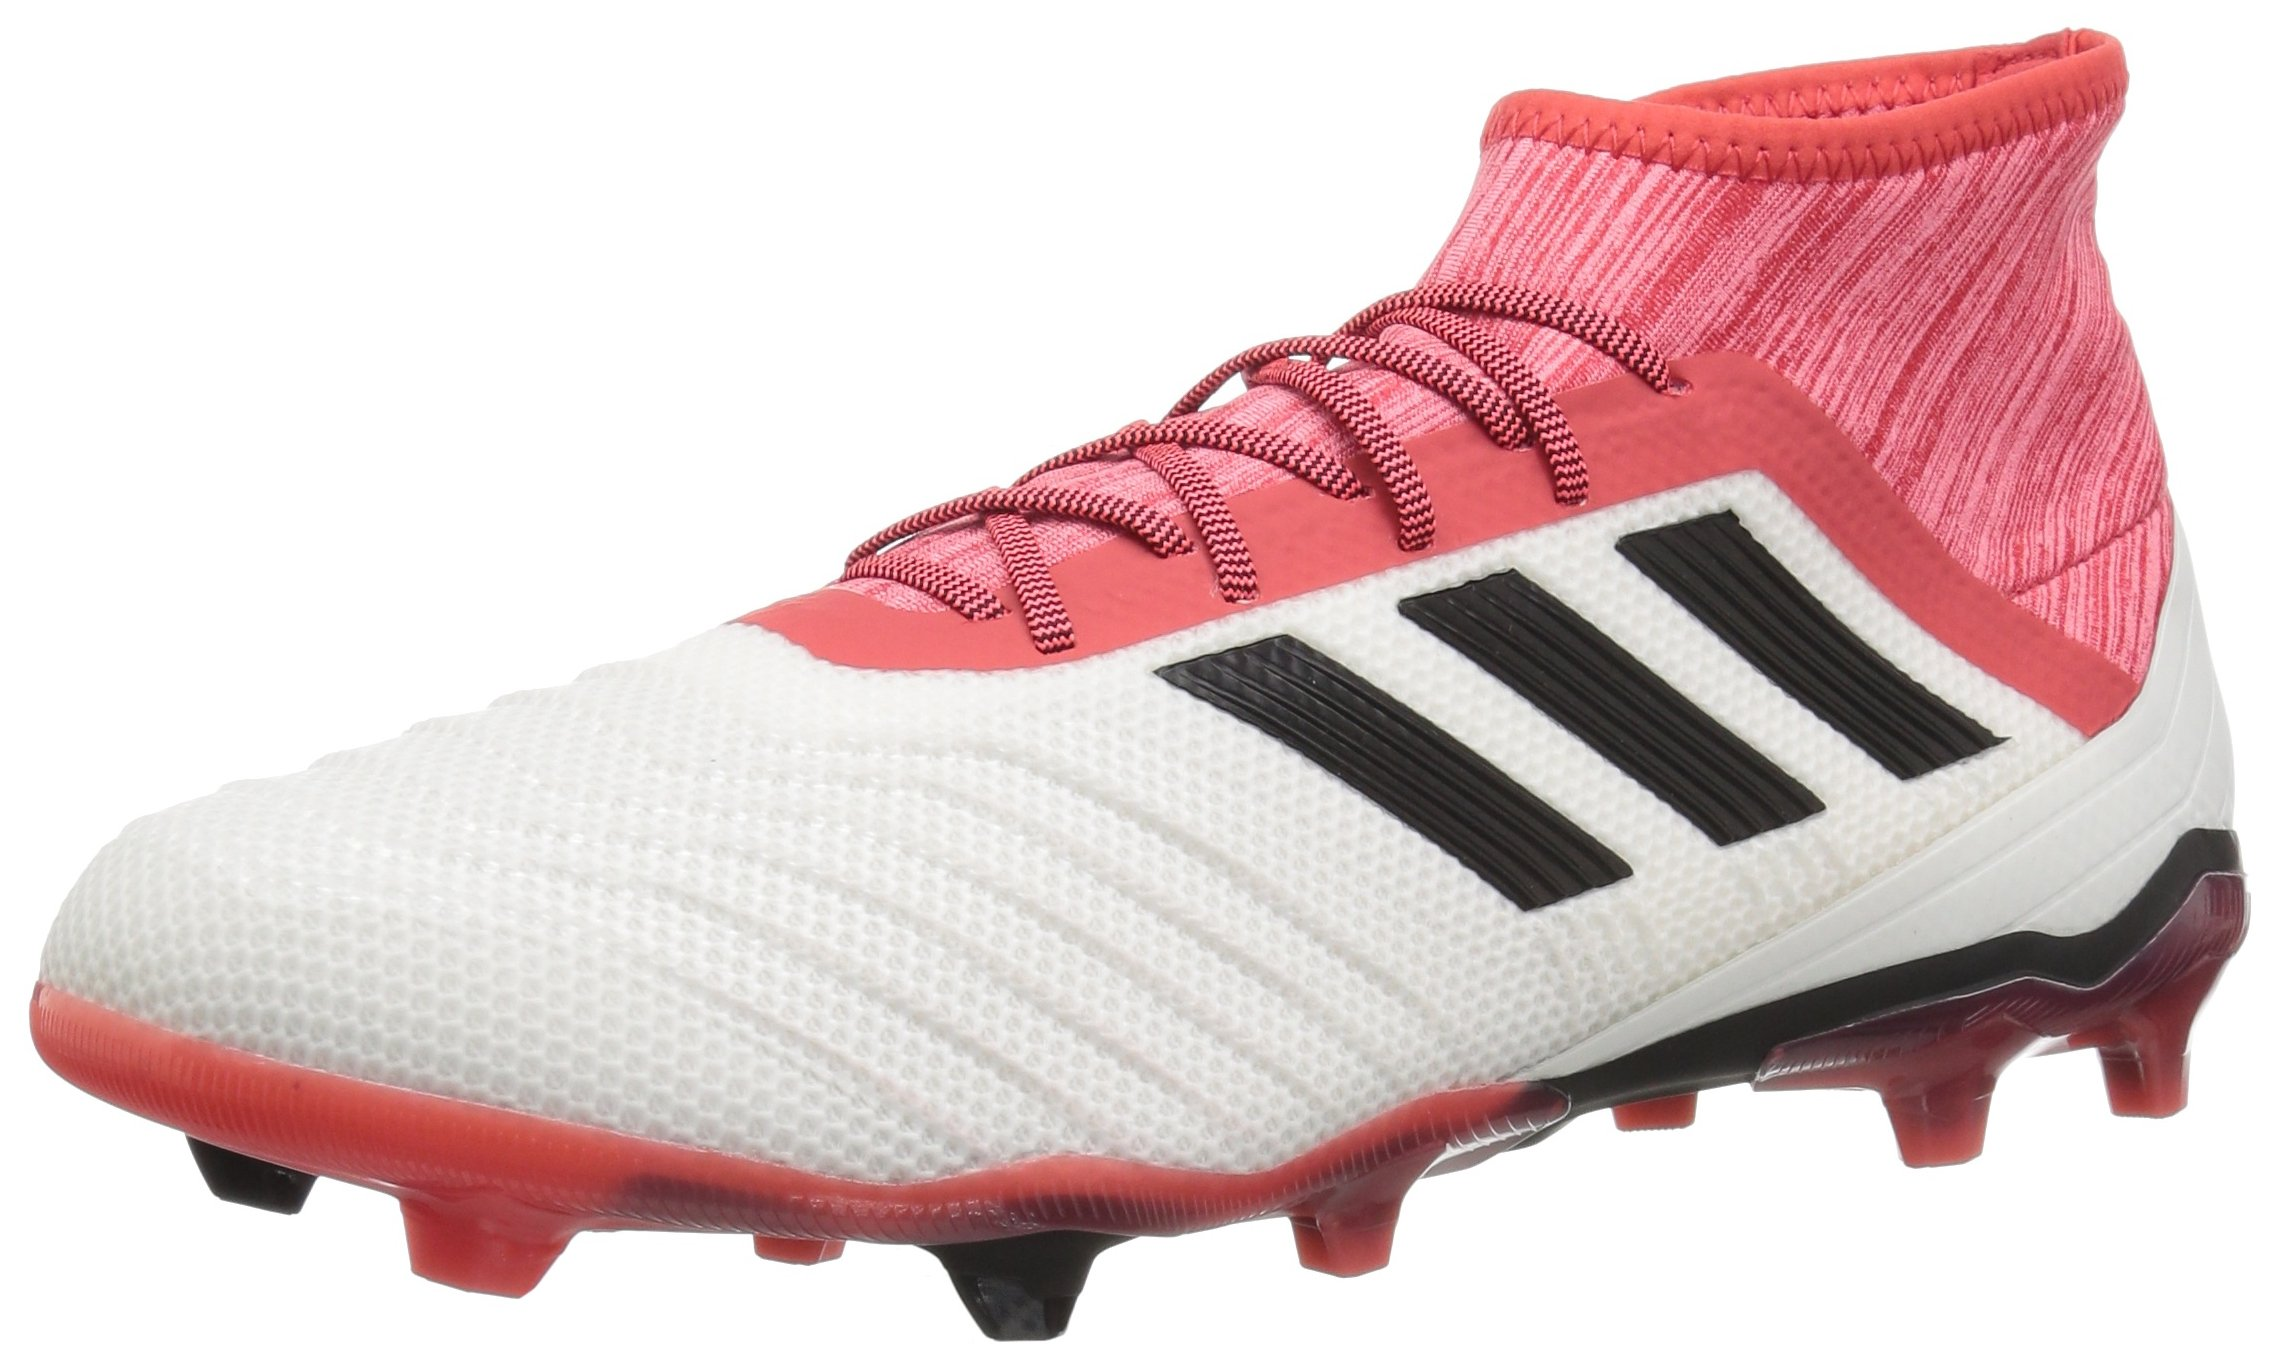 adidas Predator 18.2 FG Soccer Shoe, White/Core Black/Real Coral, 9 M US by adidas